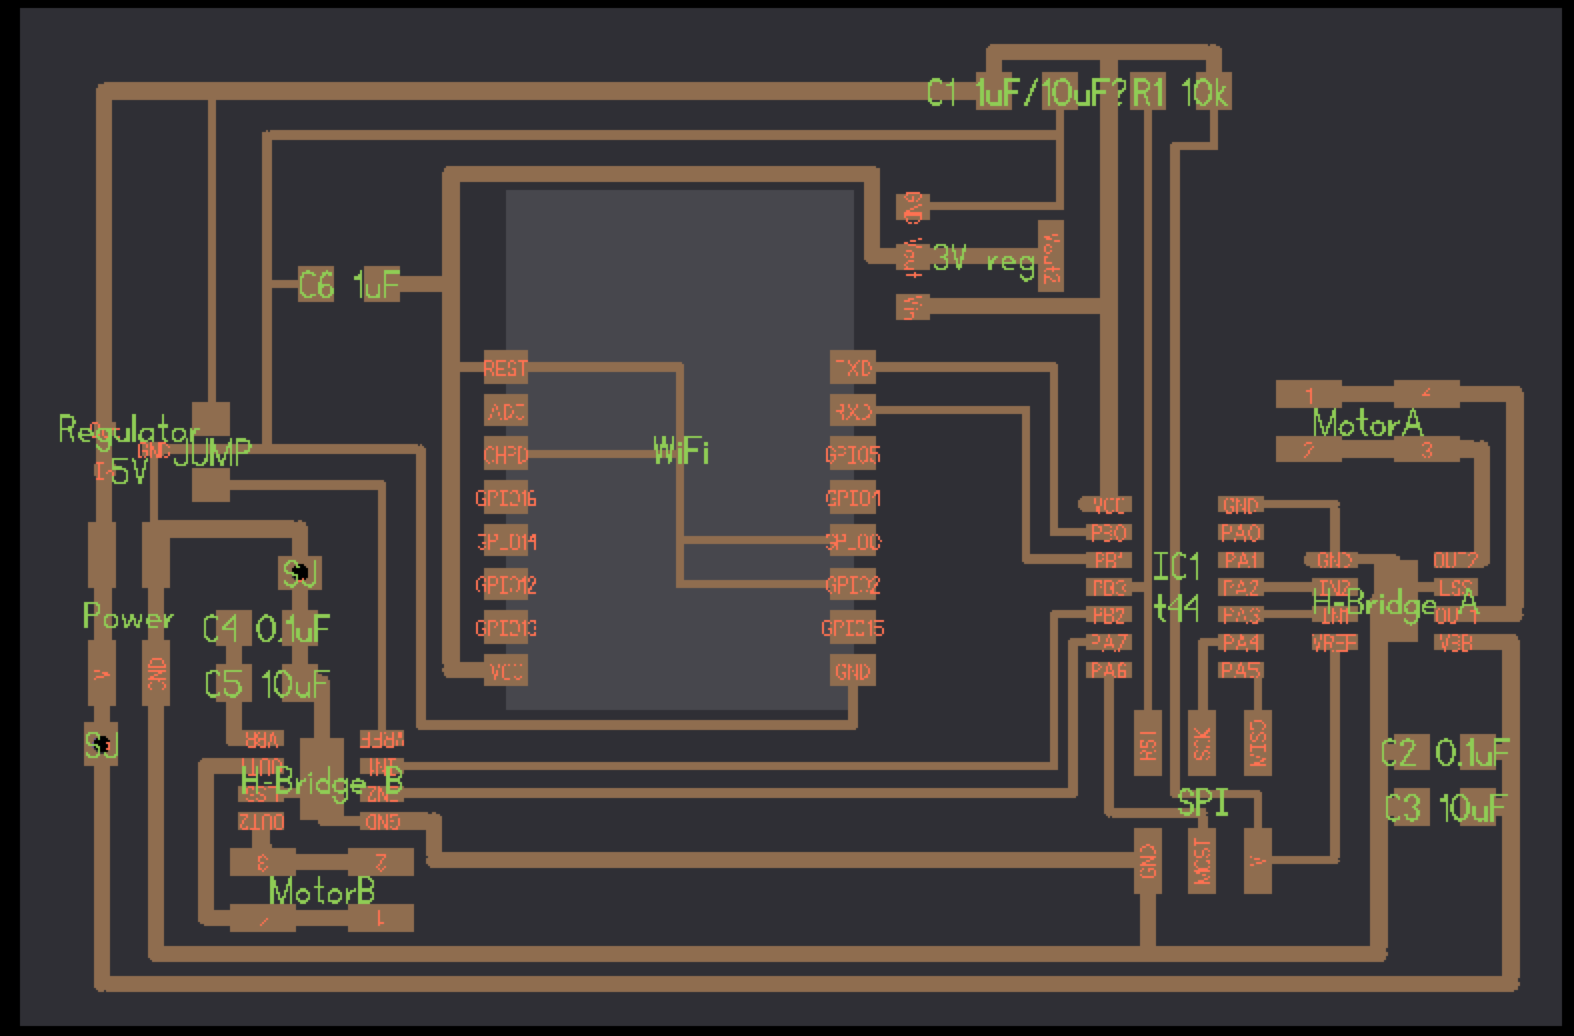 Copplestone As Directed In The Diagram Circuit Requires A Couple Of 1uf Esp8266 Is 33v Device Which Means That Addition To Its Power Being Rx And Tx Lines Need Work Between Neils Reference Design